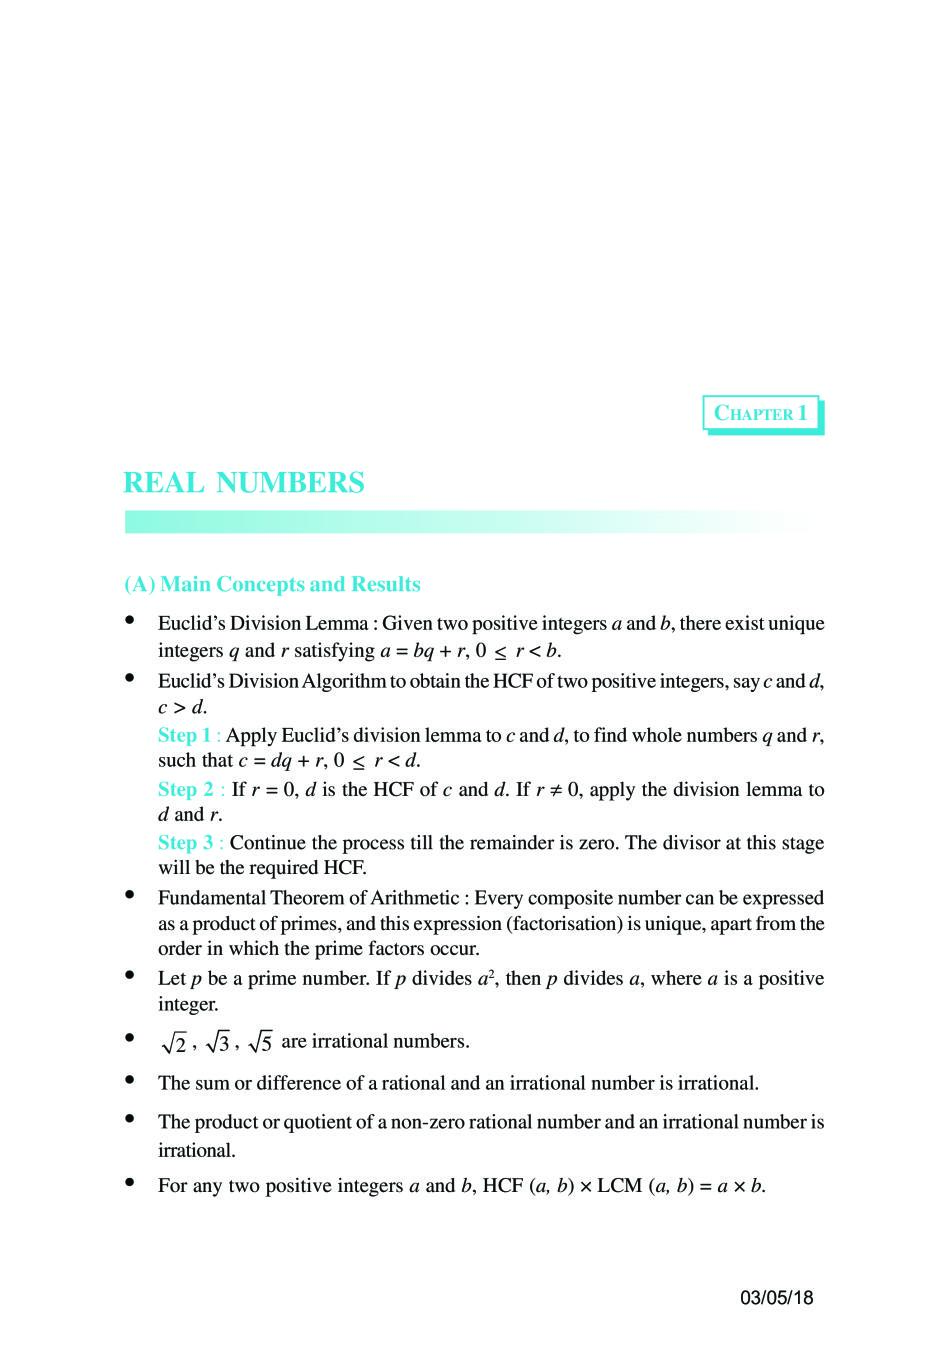 NCERT Book Class 10 Maths Chapter 1 Real Numbers